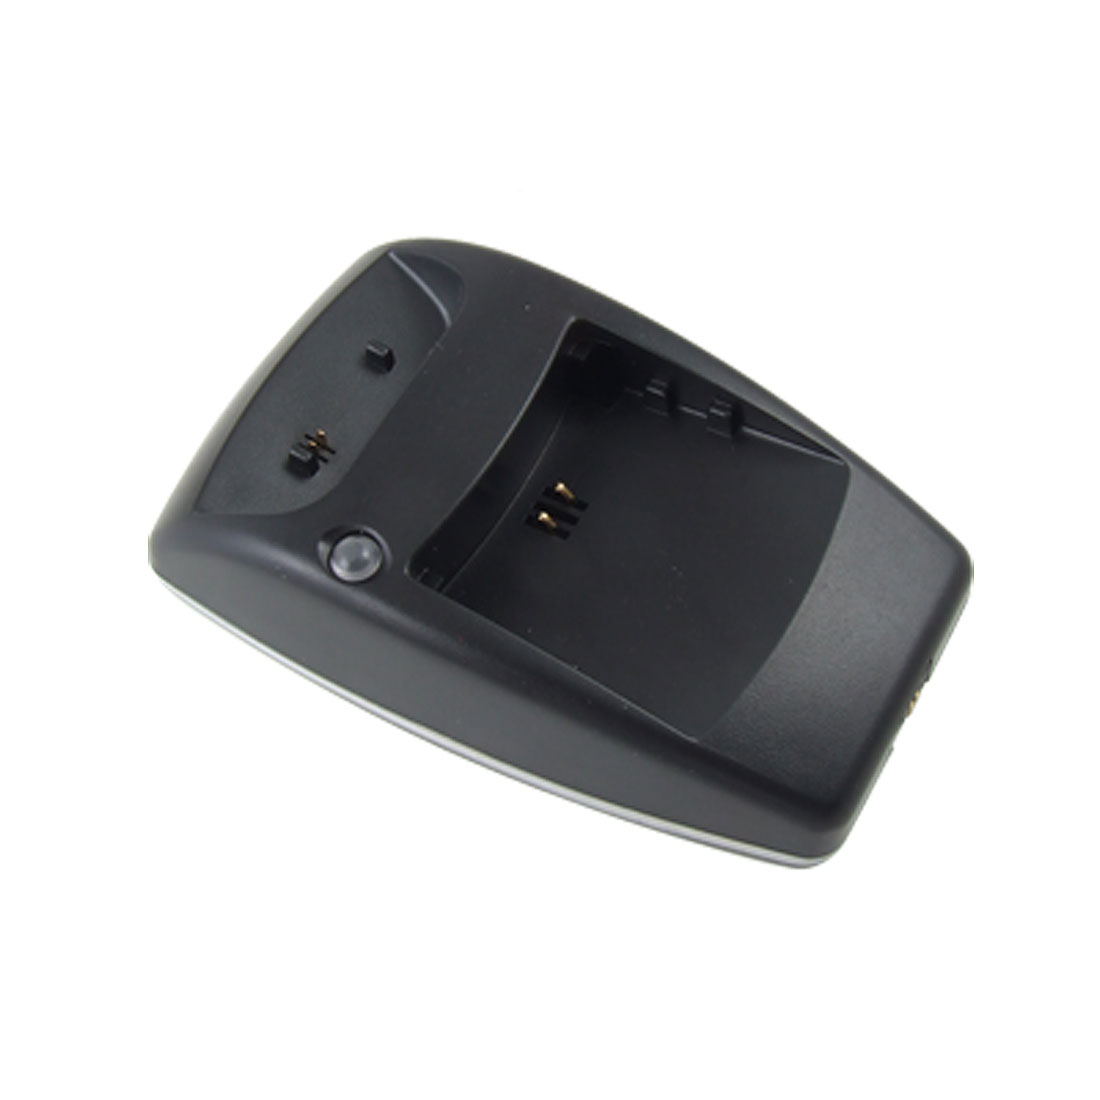 Black Battery Desktop Dock Charger for Ericsson T68